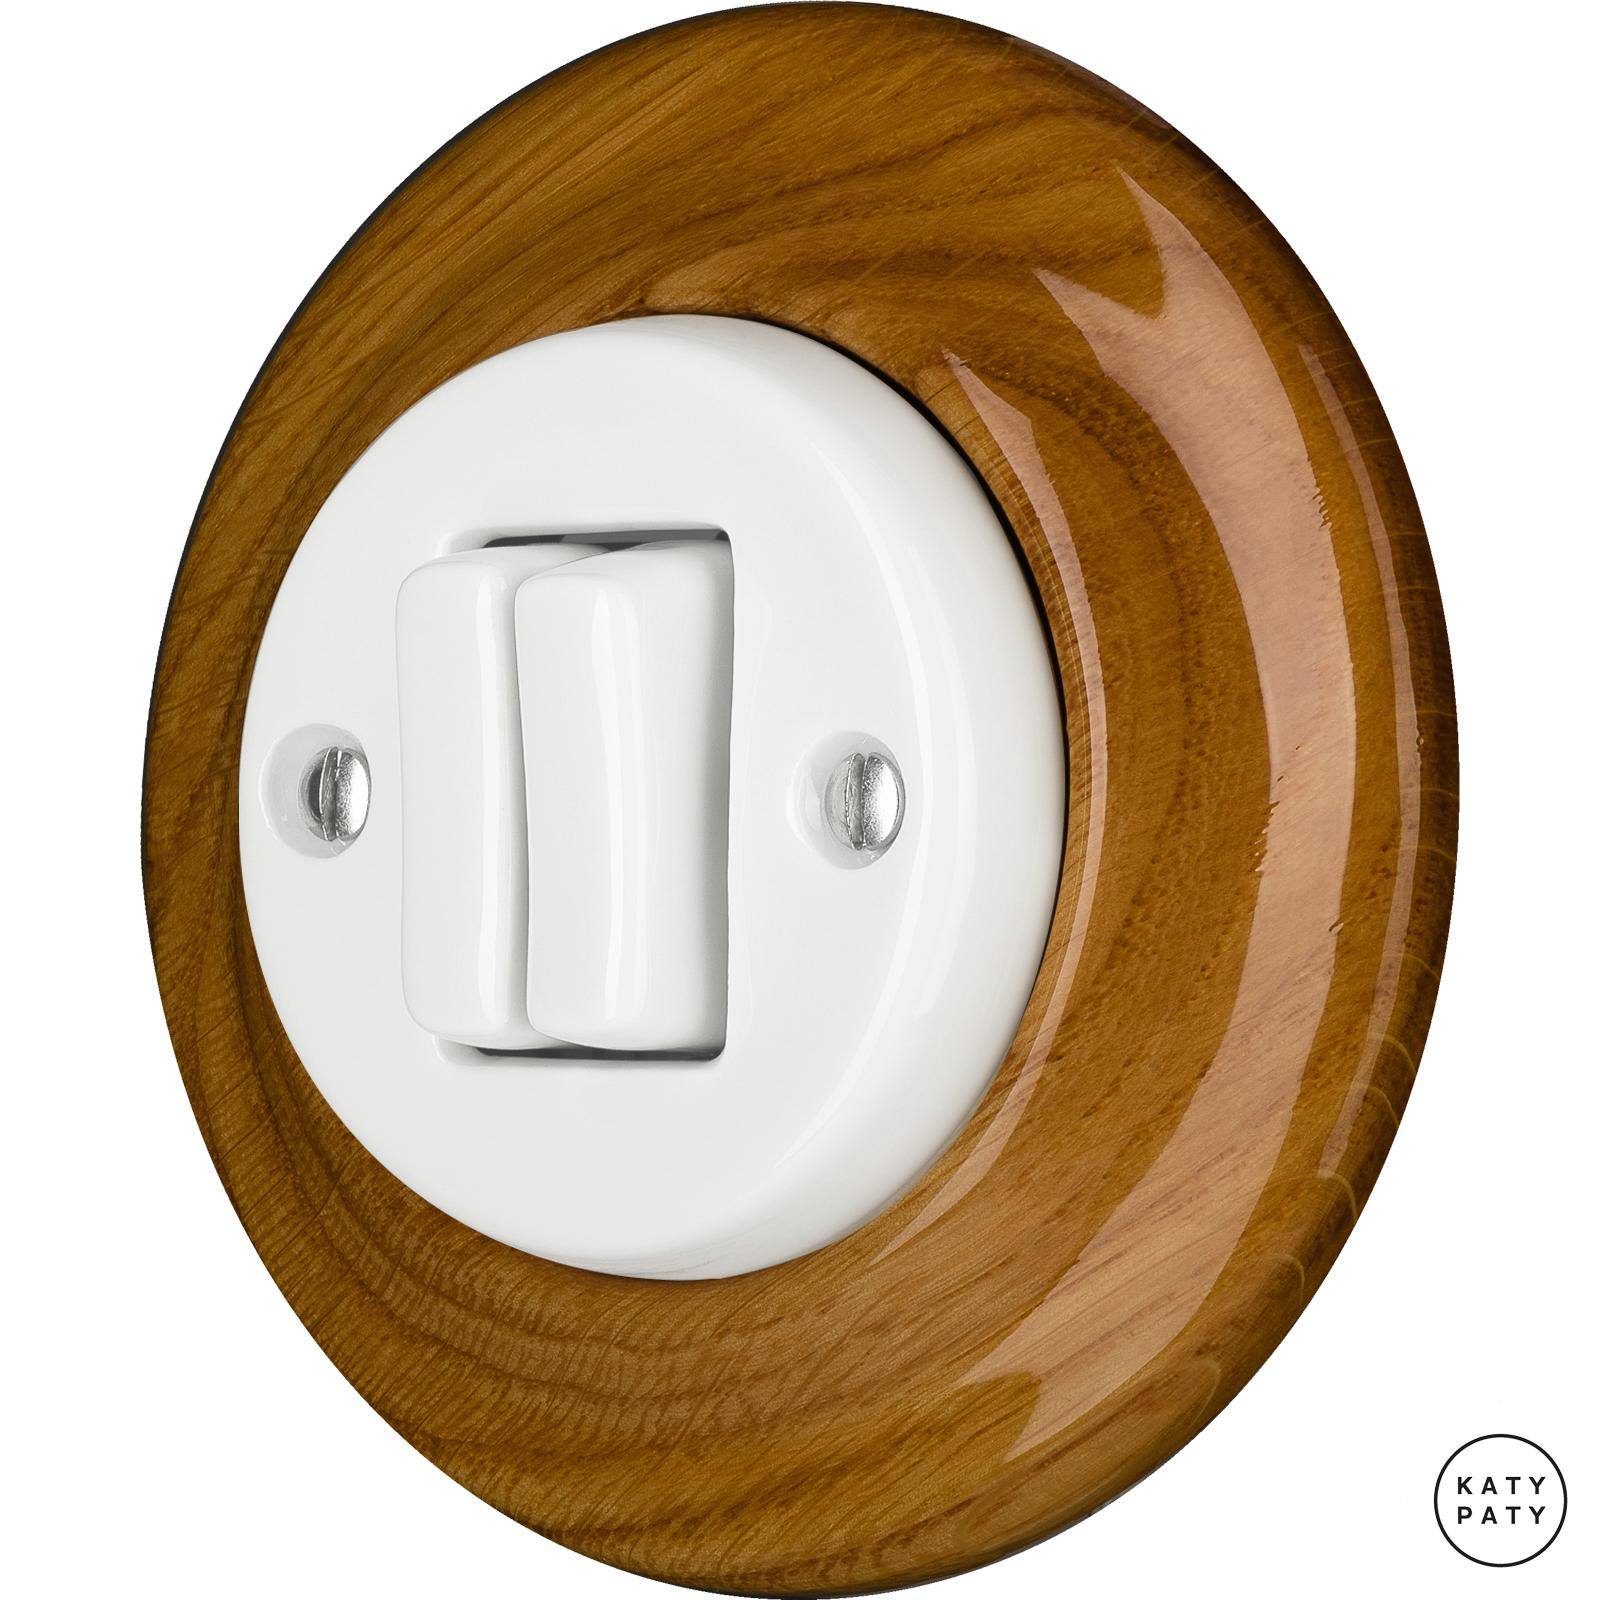 Porcelain switches - a 2 gang ()  - ROBUS | Katy Paty